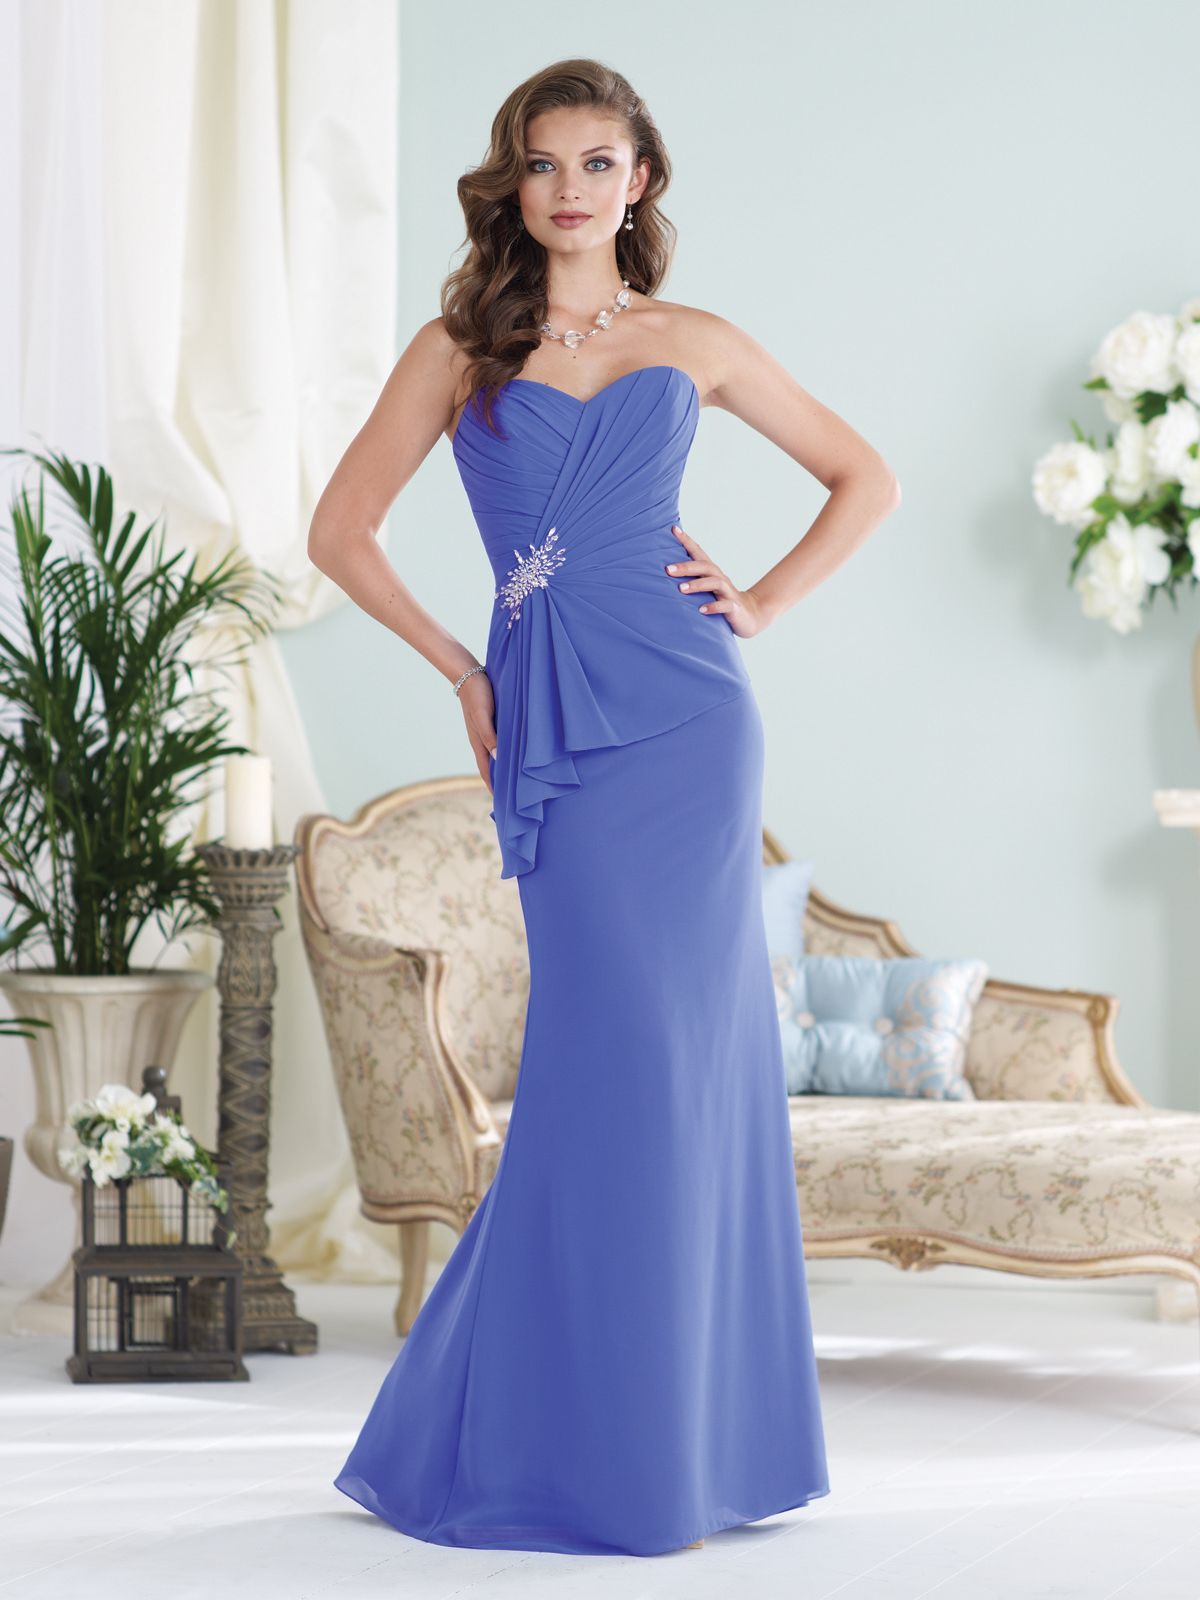 Strapless chiffon slim a line gown with sweetheart neckline strapless satin with beadings long bridesmaid dresses bridesmaid dresses bridesmaid dresses weddings cddress ombrellifo Image collections